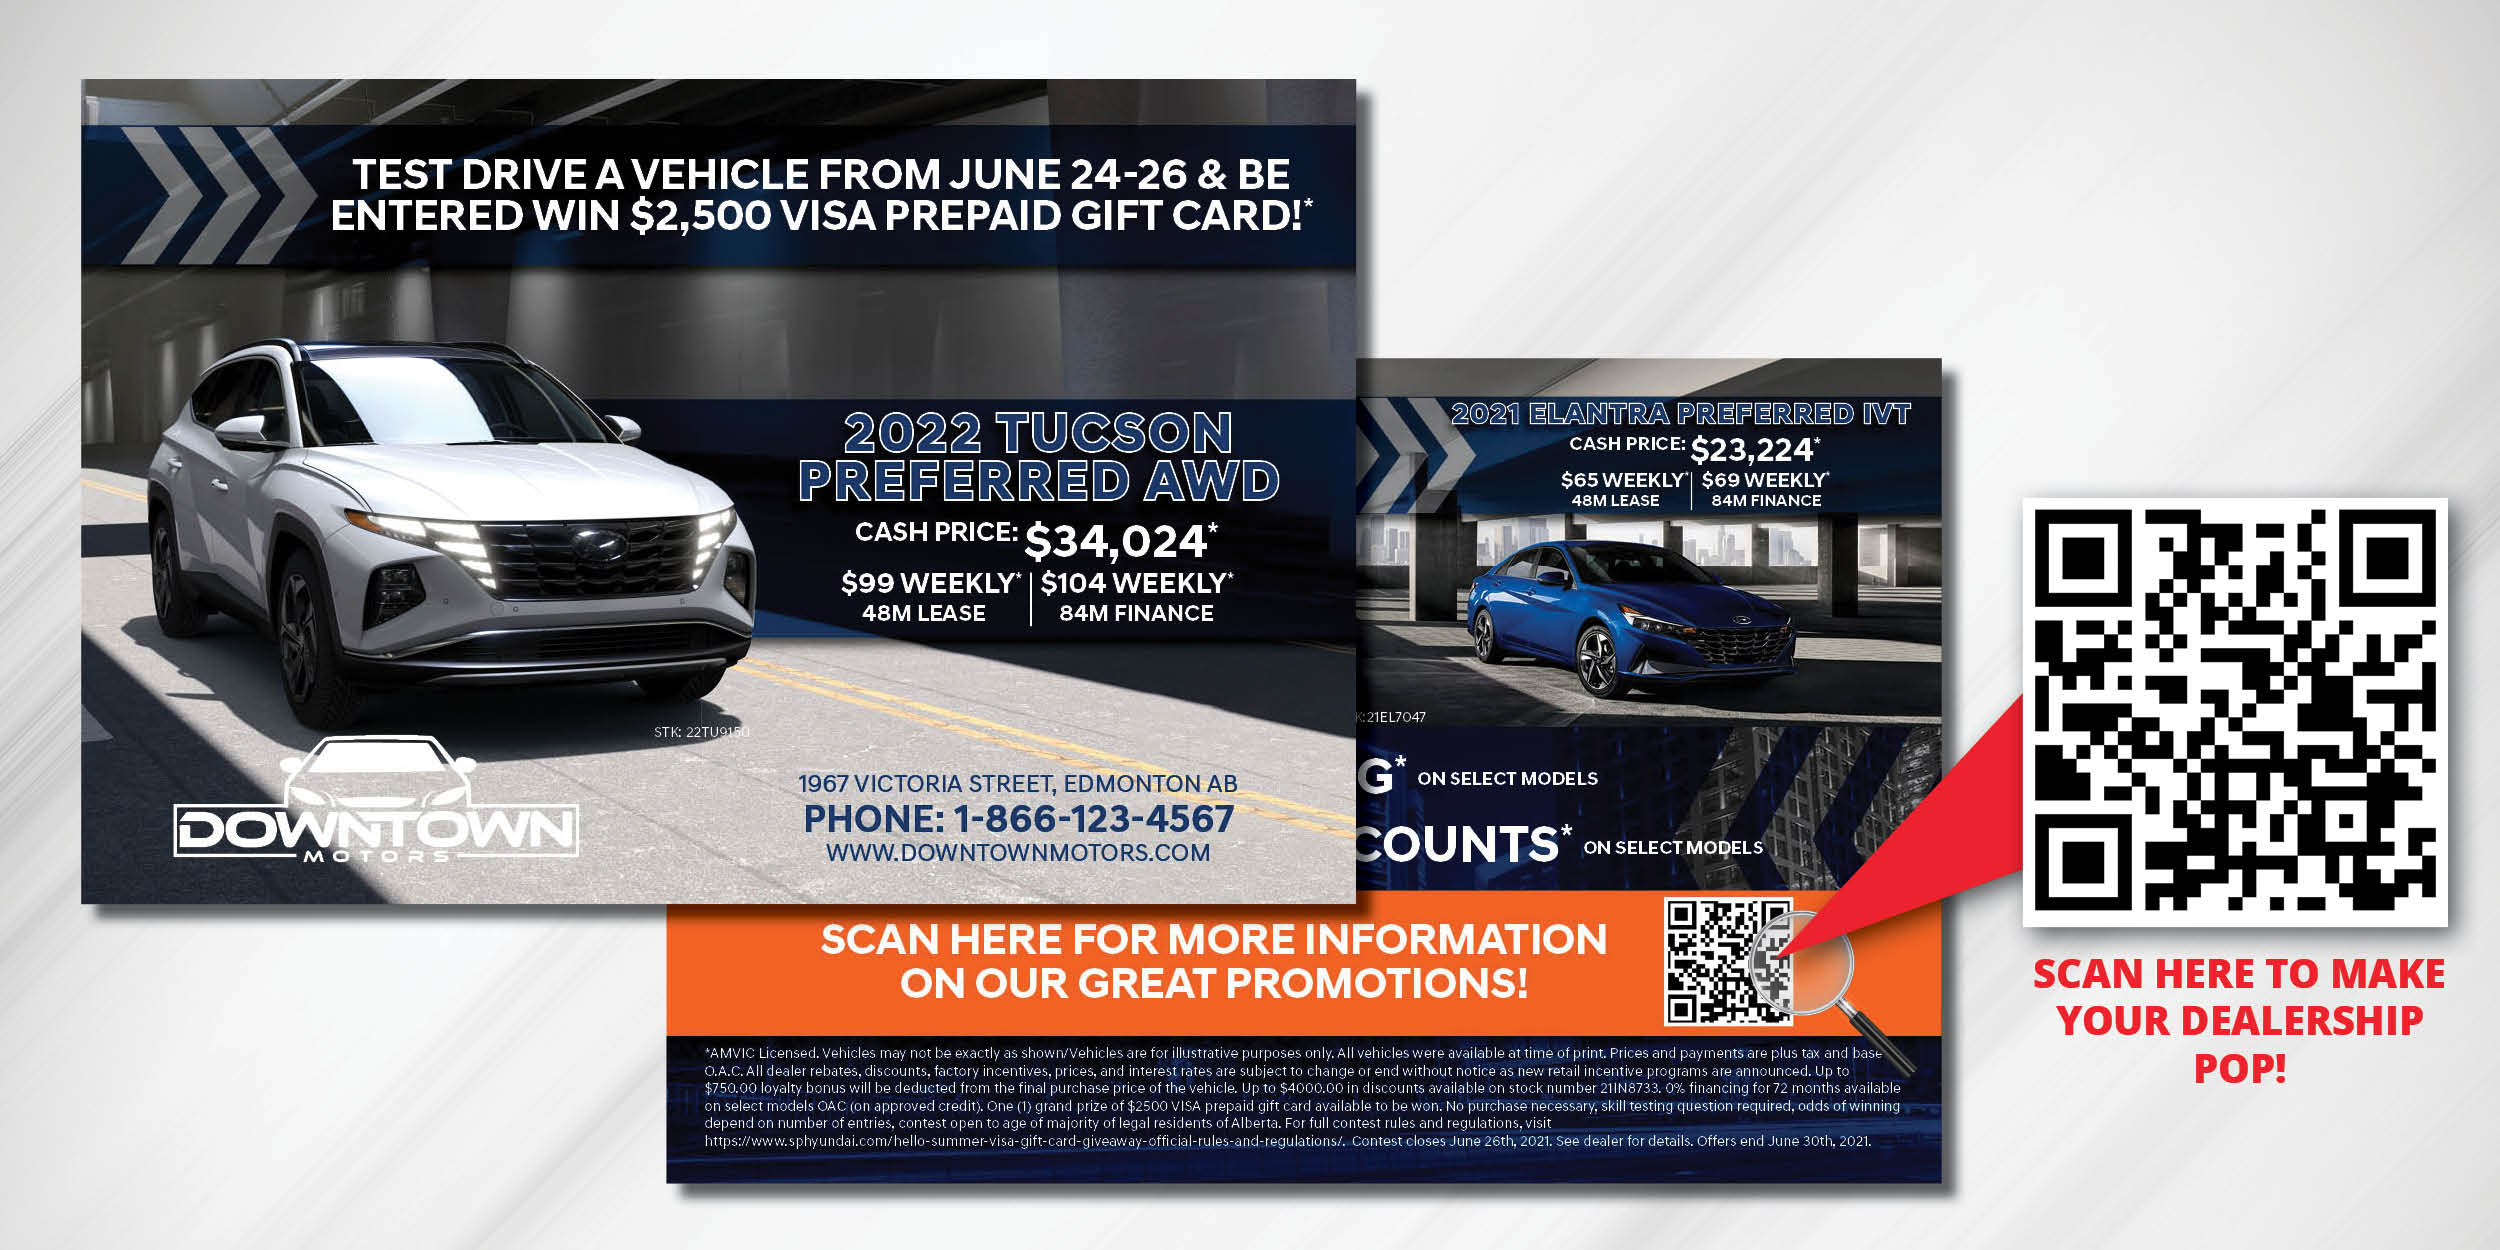 QR codes on direct mail from automotive dealership in Edmonton